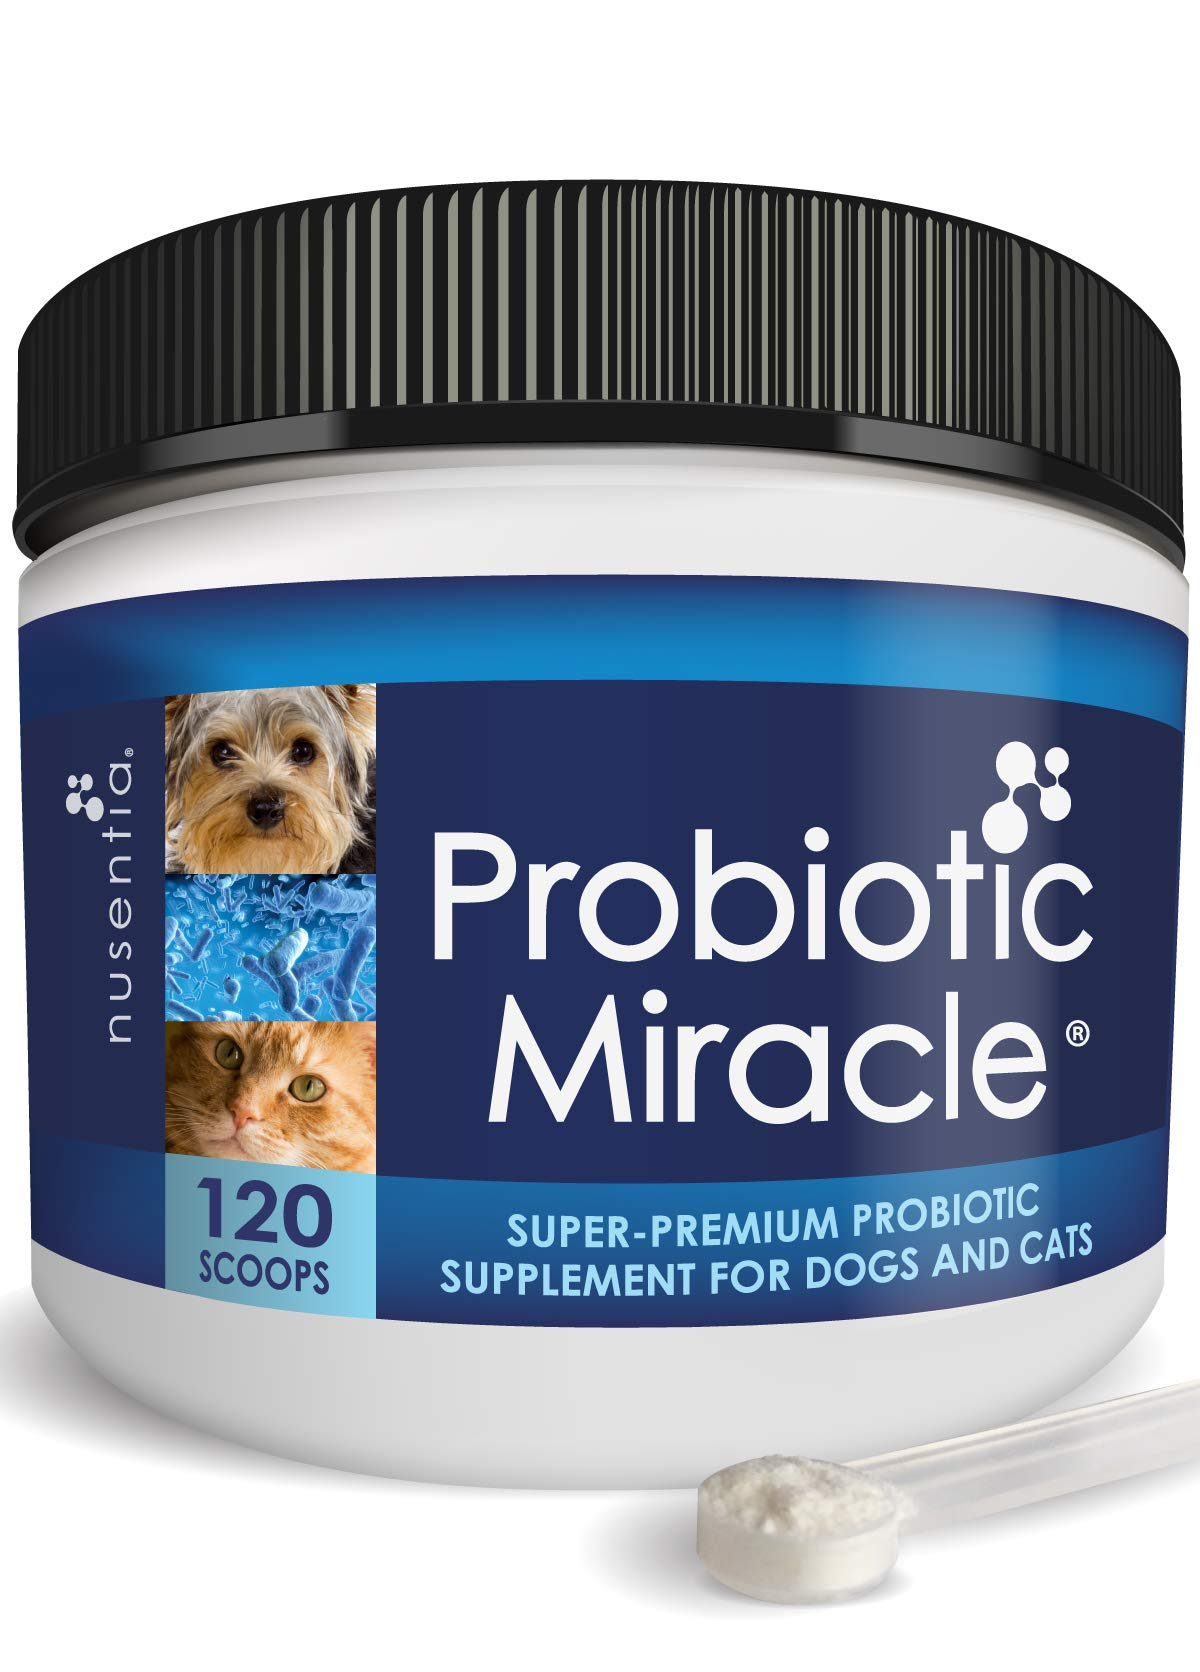 Probiotics for Cats, Dogs - 120 Scoops - Probiotic Miracle - Support Diarrhea, Loose Stool, Yeast, and More by NUSENTIA